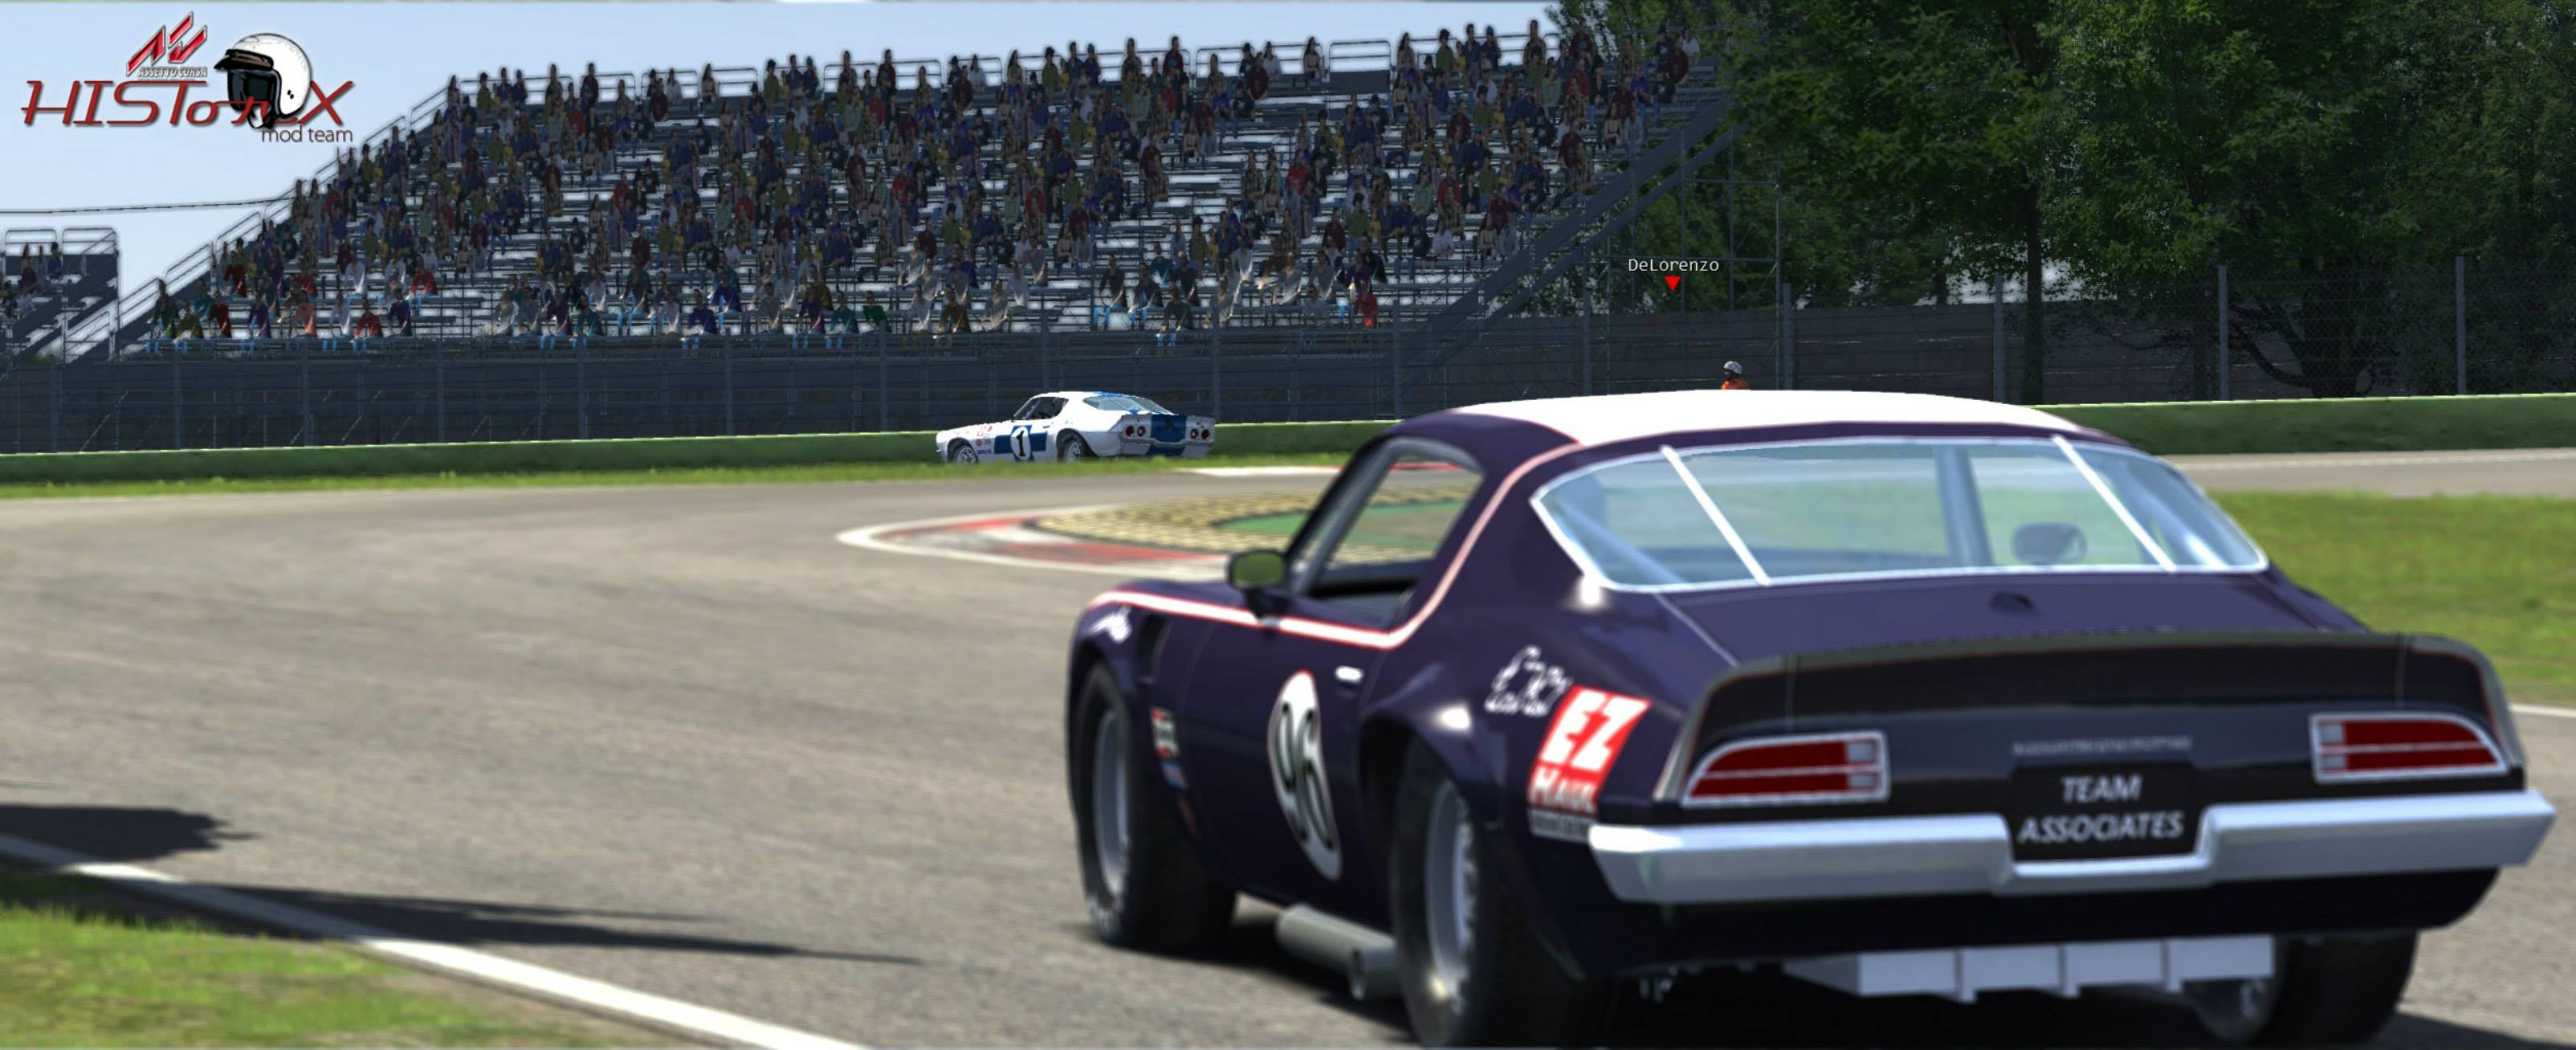 HistorX Mod Team - Assetto Corsa Test Shots Released ...